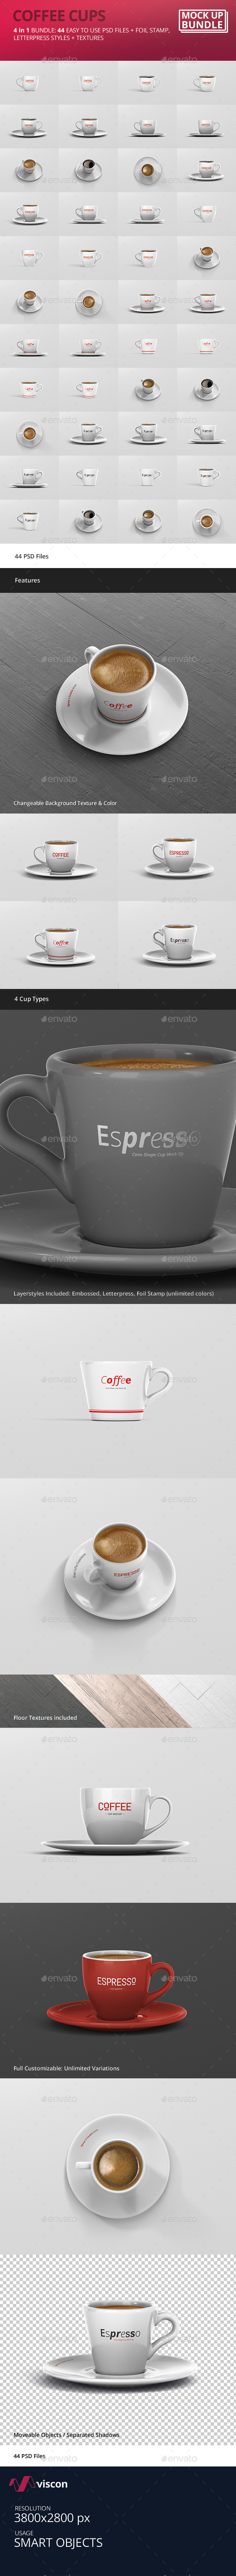 Espresso / Coffee Cup Mockup Bundle - Logo Product Mock-Ups